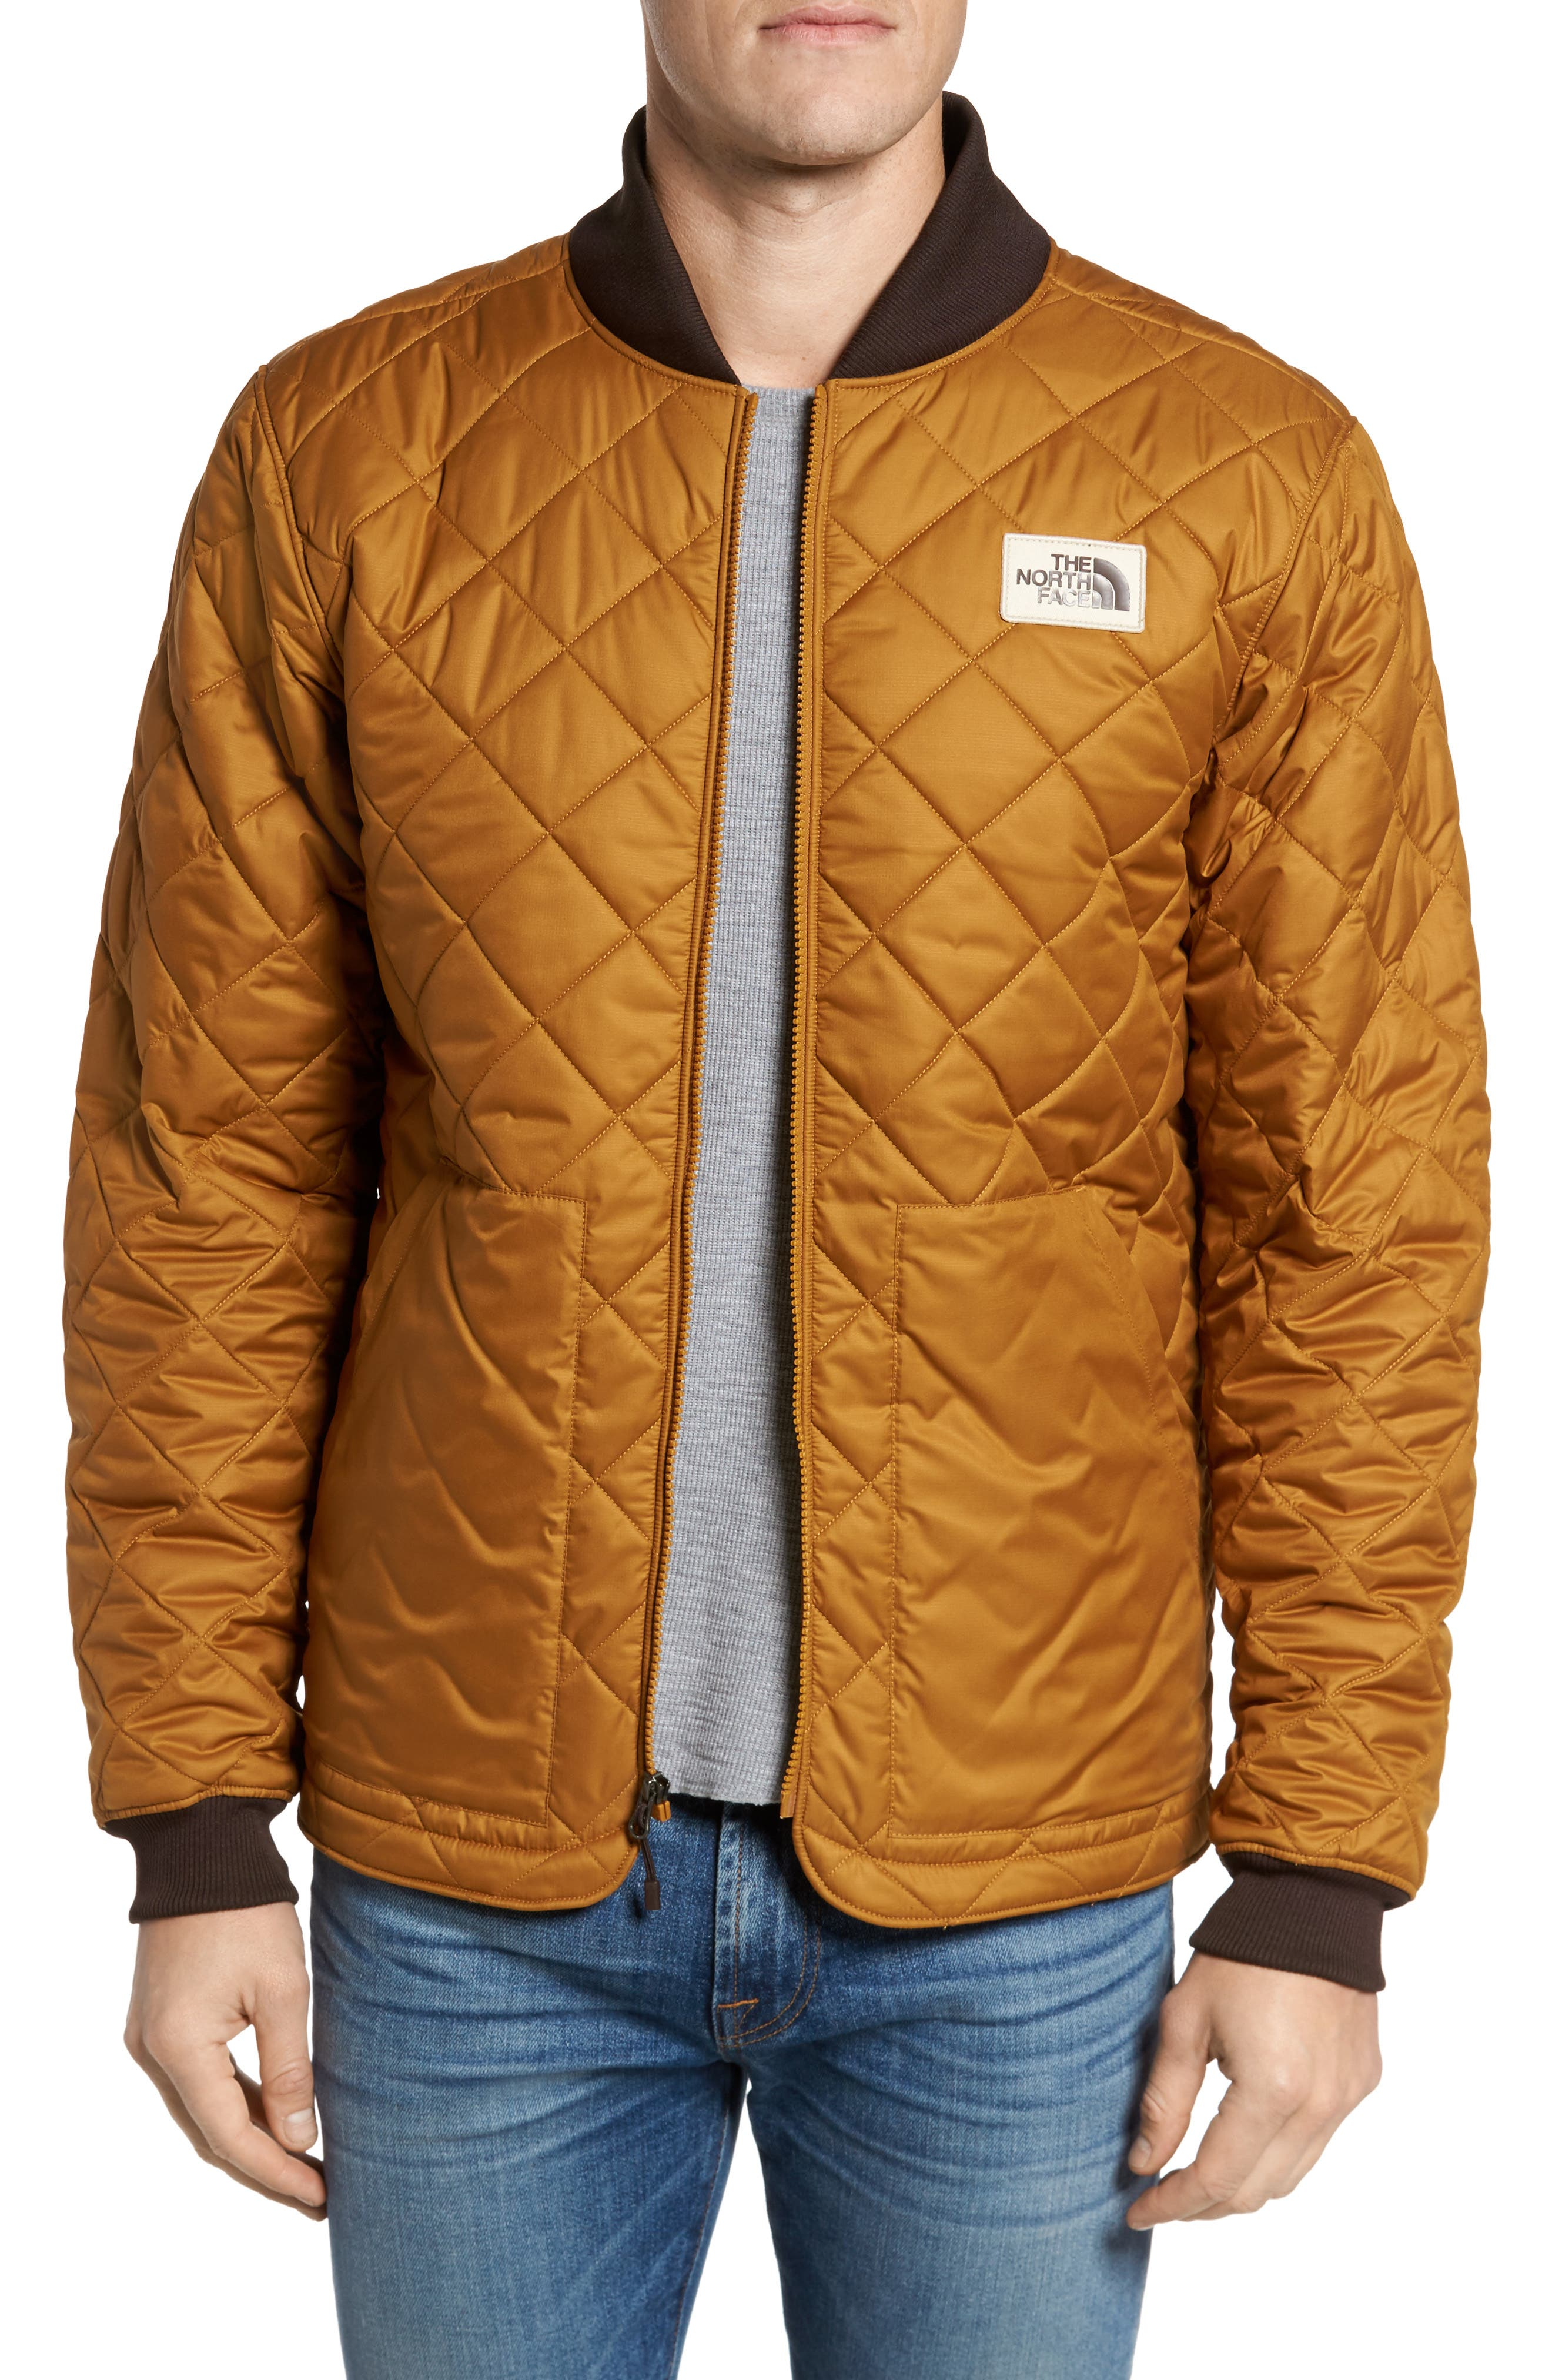 Cuchillo Insulated Jacket,                         Main,                         color, Golden Brown